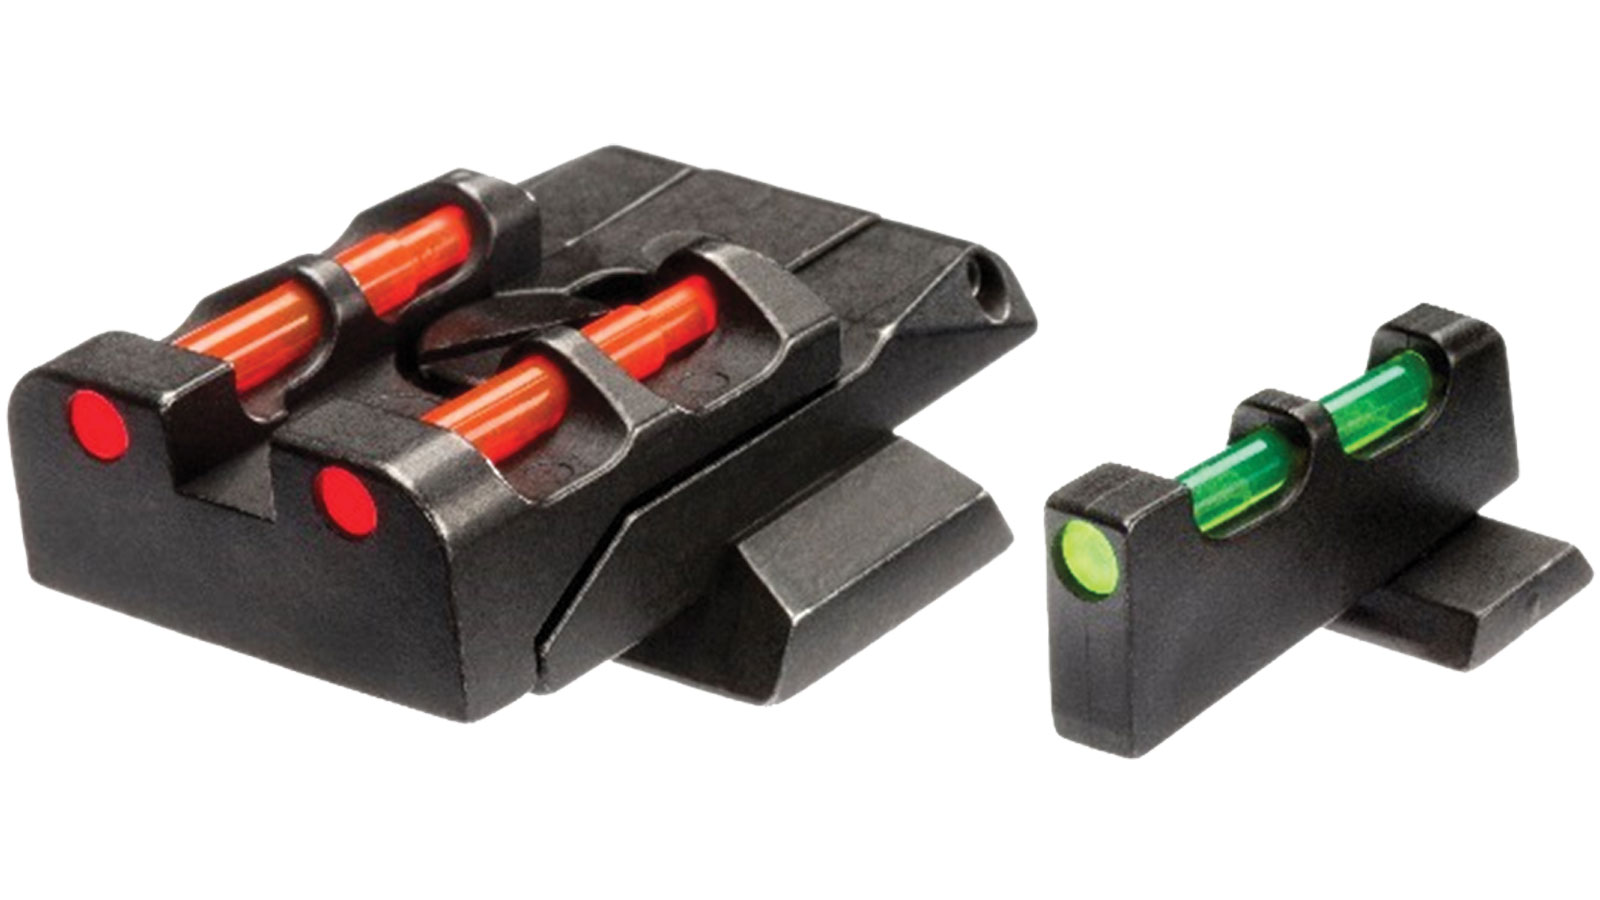 Hiviz  M&P Front and Rear Sight S&W M&P Green|Red|White Front Green|Red|Black Rear Black